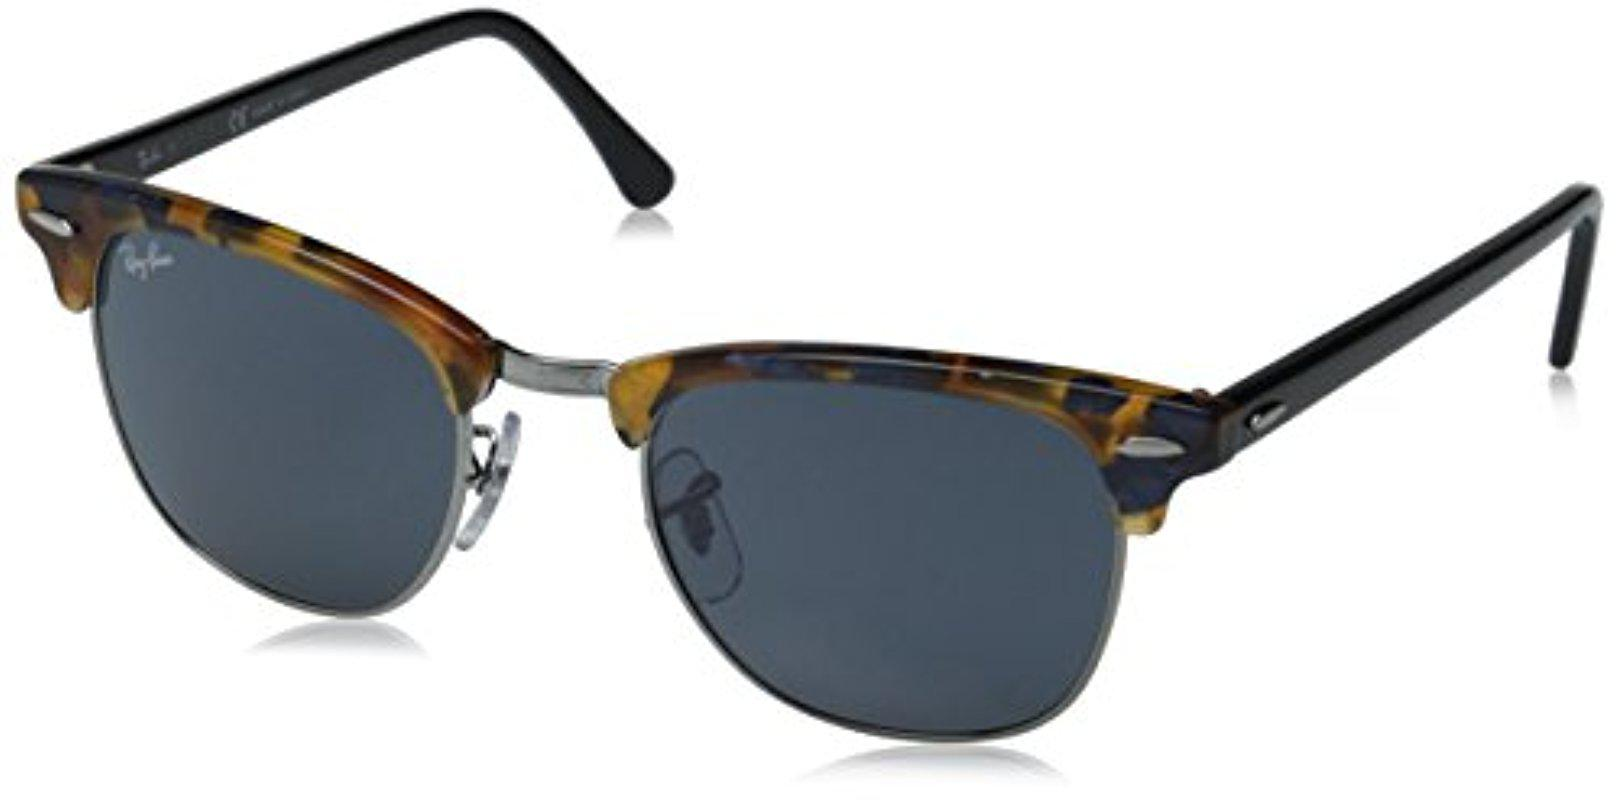 Lyst - Ray-Ban Clubmaster - Spotted Blue Havana Frame Grey Lenses ...